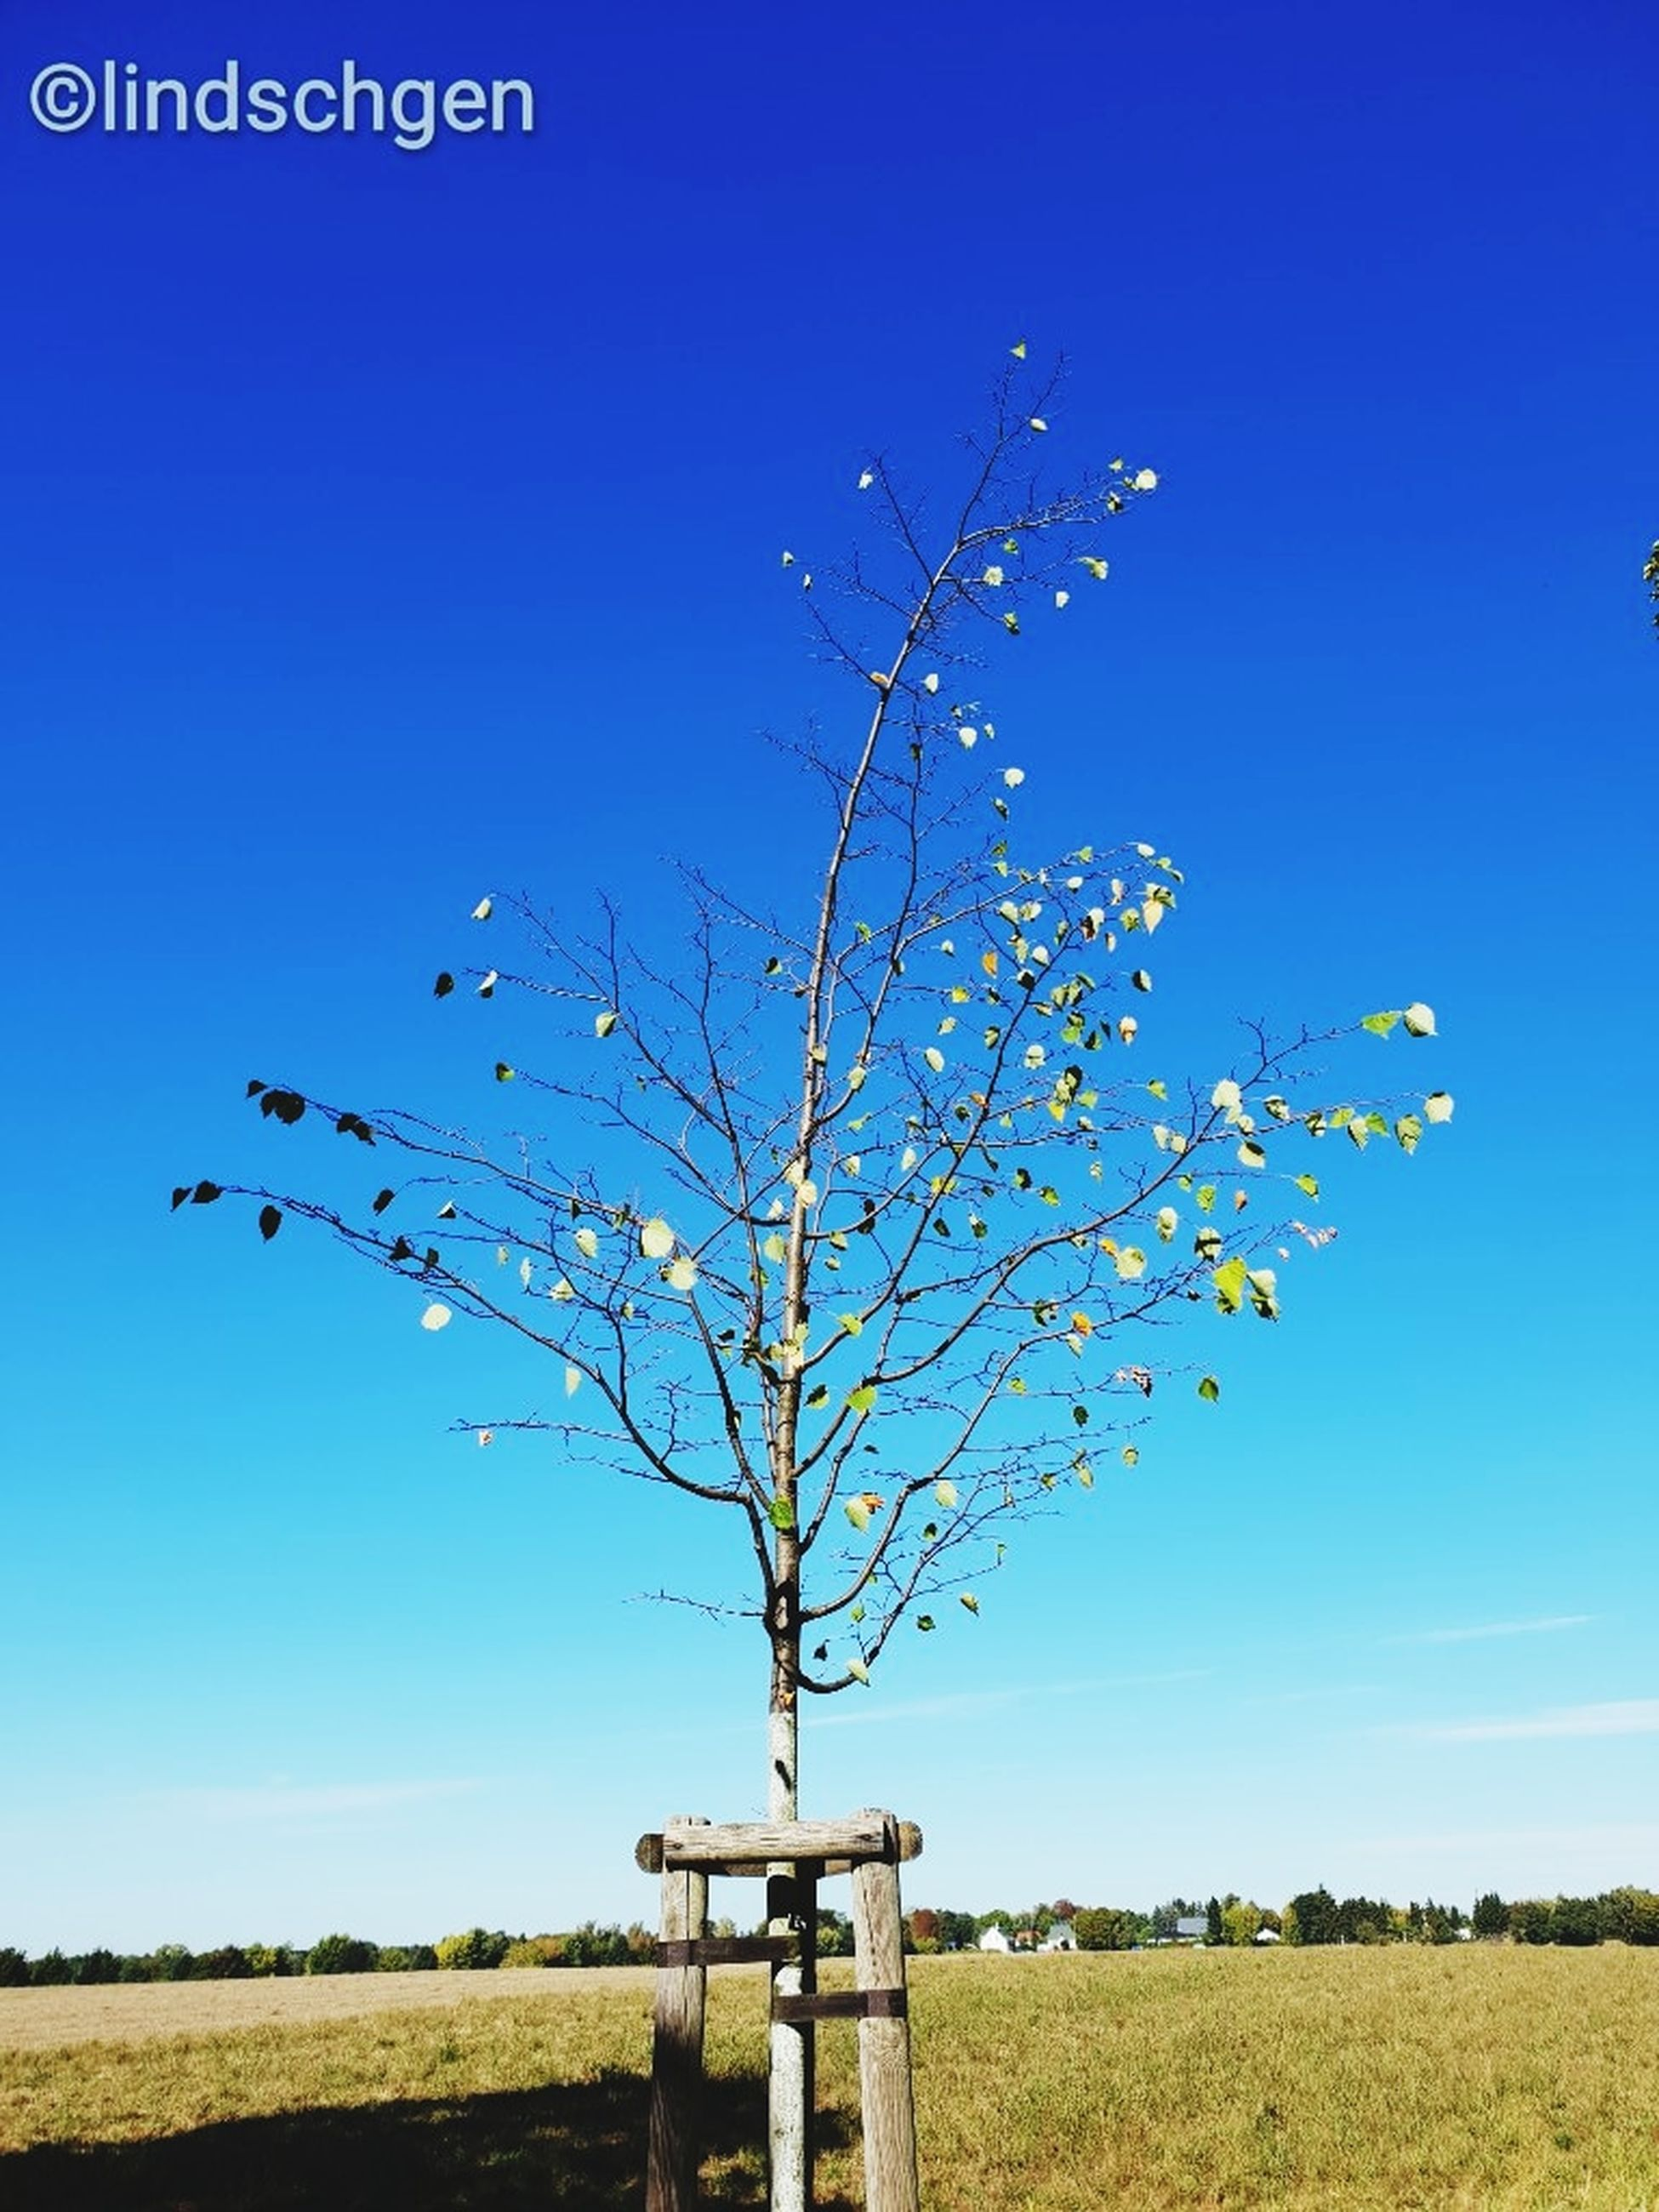 sky, blue, plant, clear sky, nature, tree, field, no people, land, landscape, day, agriculture, growth, environment, beauty in nature, scenics - nature, sunlight, tranquil scene, outdoors, branch